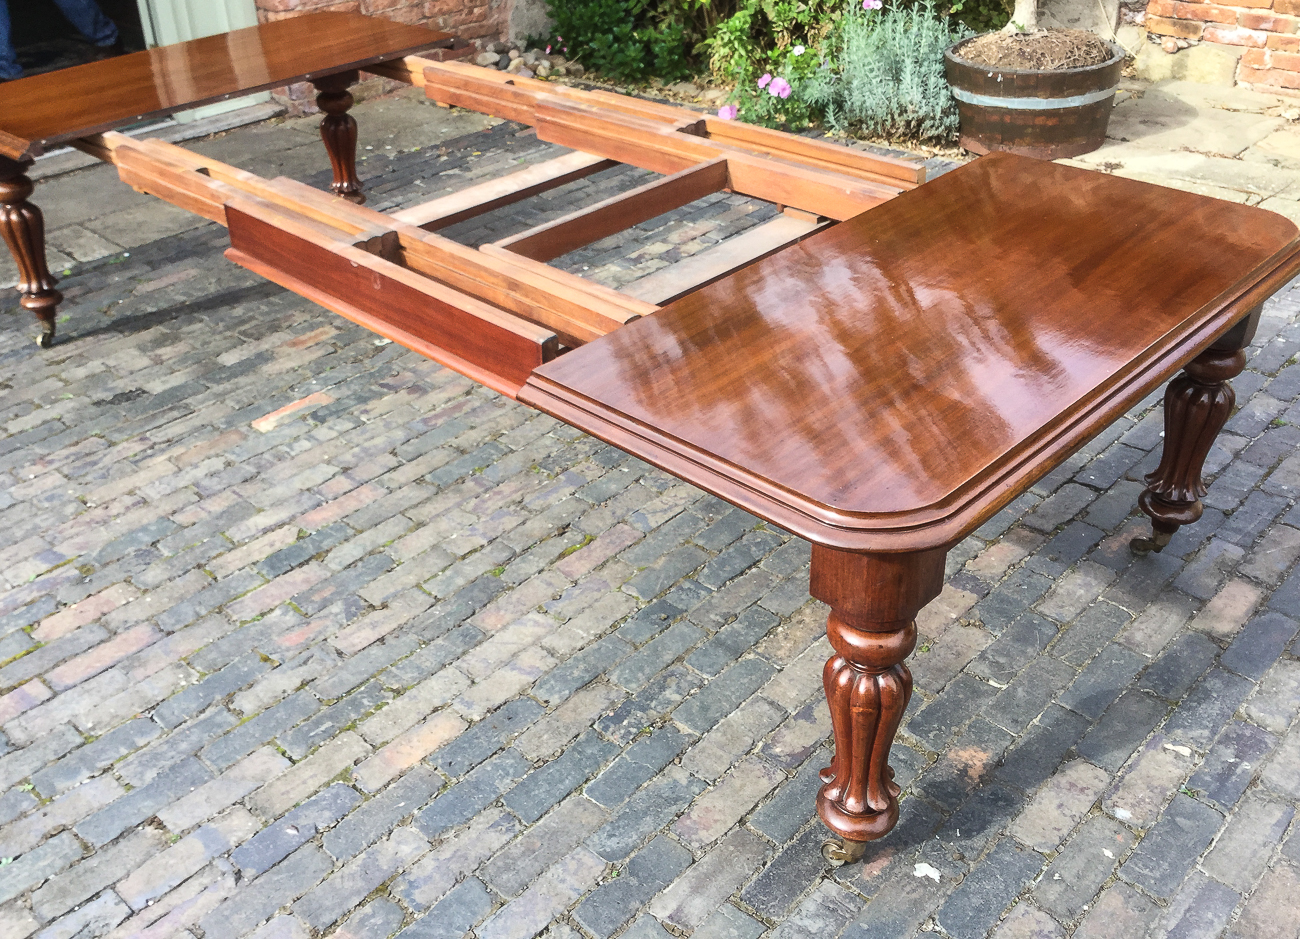 A Quality Early Victorian Extending Dining Table In Mahogany, It Has Three  Original Extension Leaves And Has A Pull Out Extension Mechanism The Leaves  Are ...